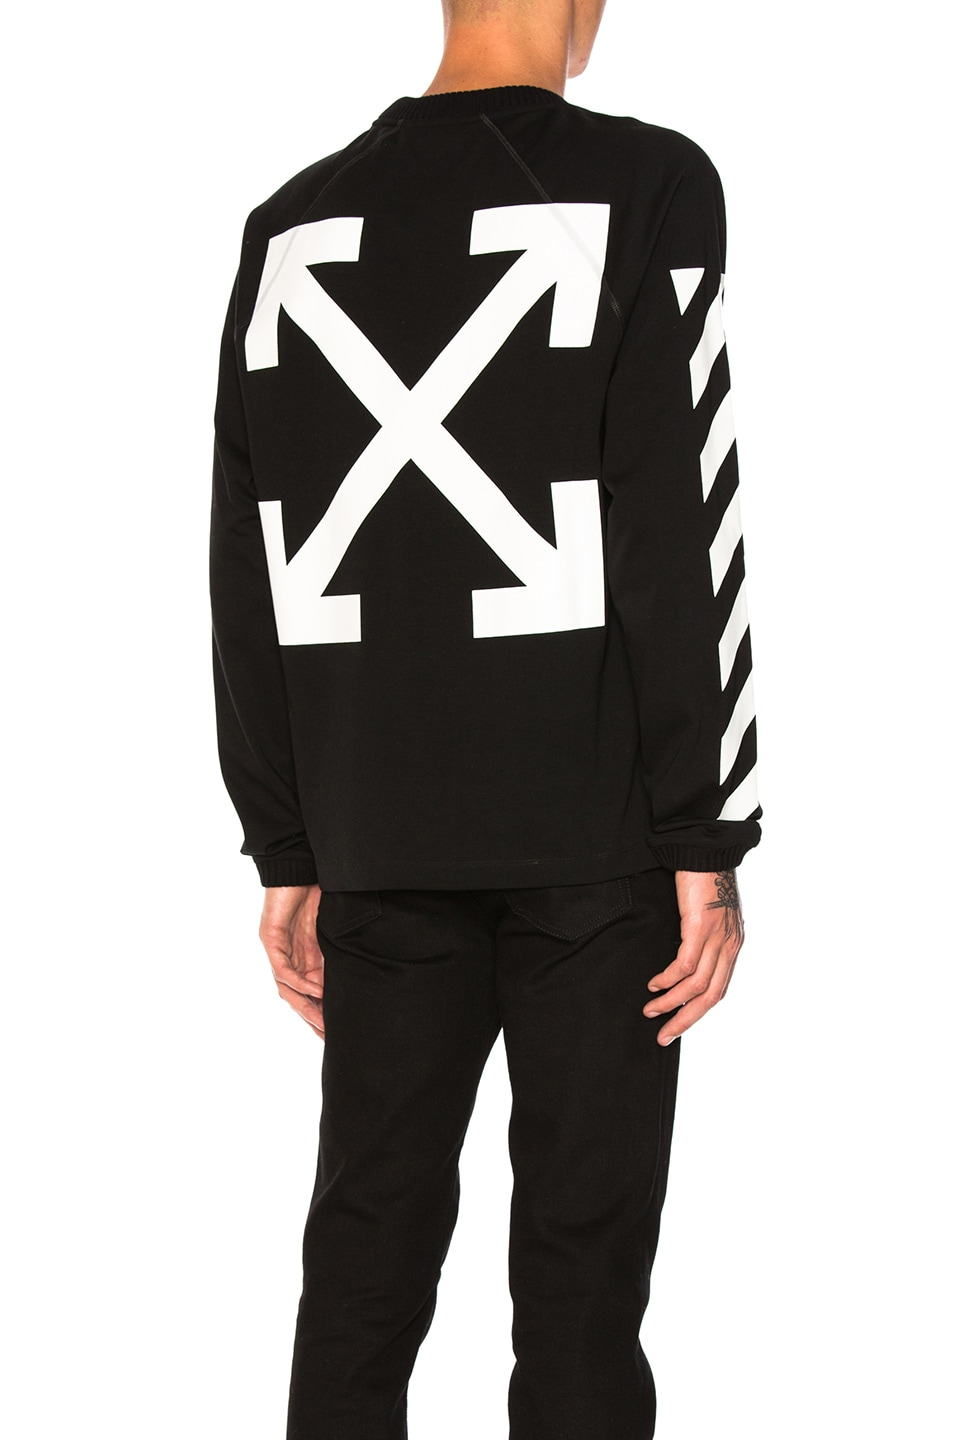 877702bc84a50 Image 1 of Moncler x Off White Long Sleeve Shirt in Black